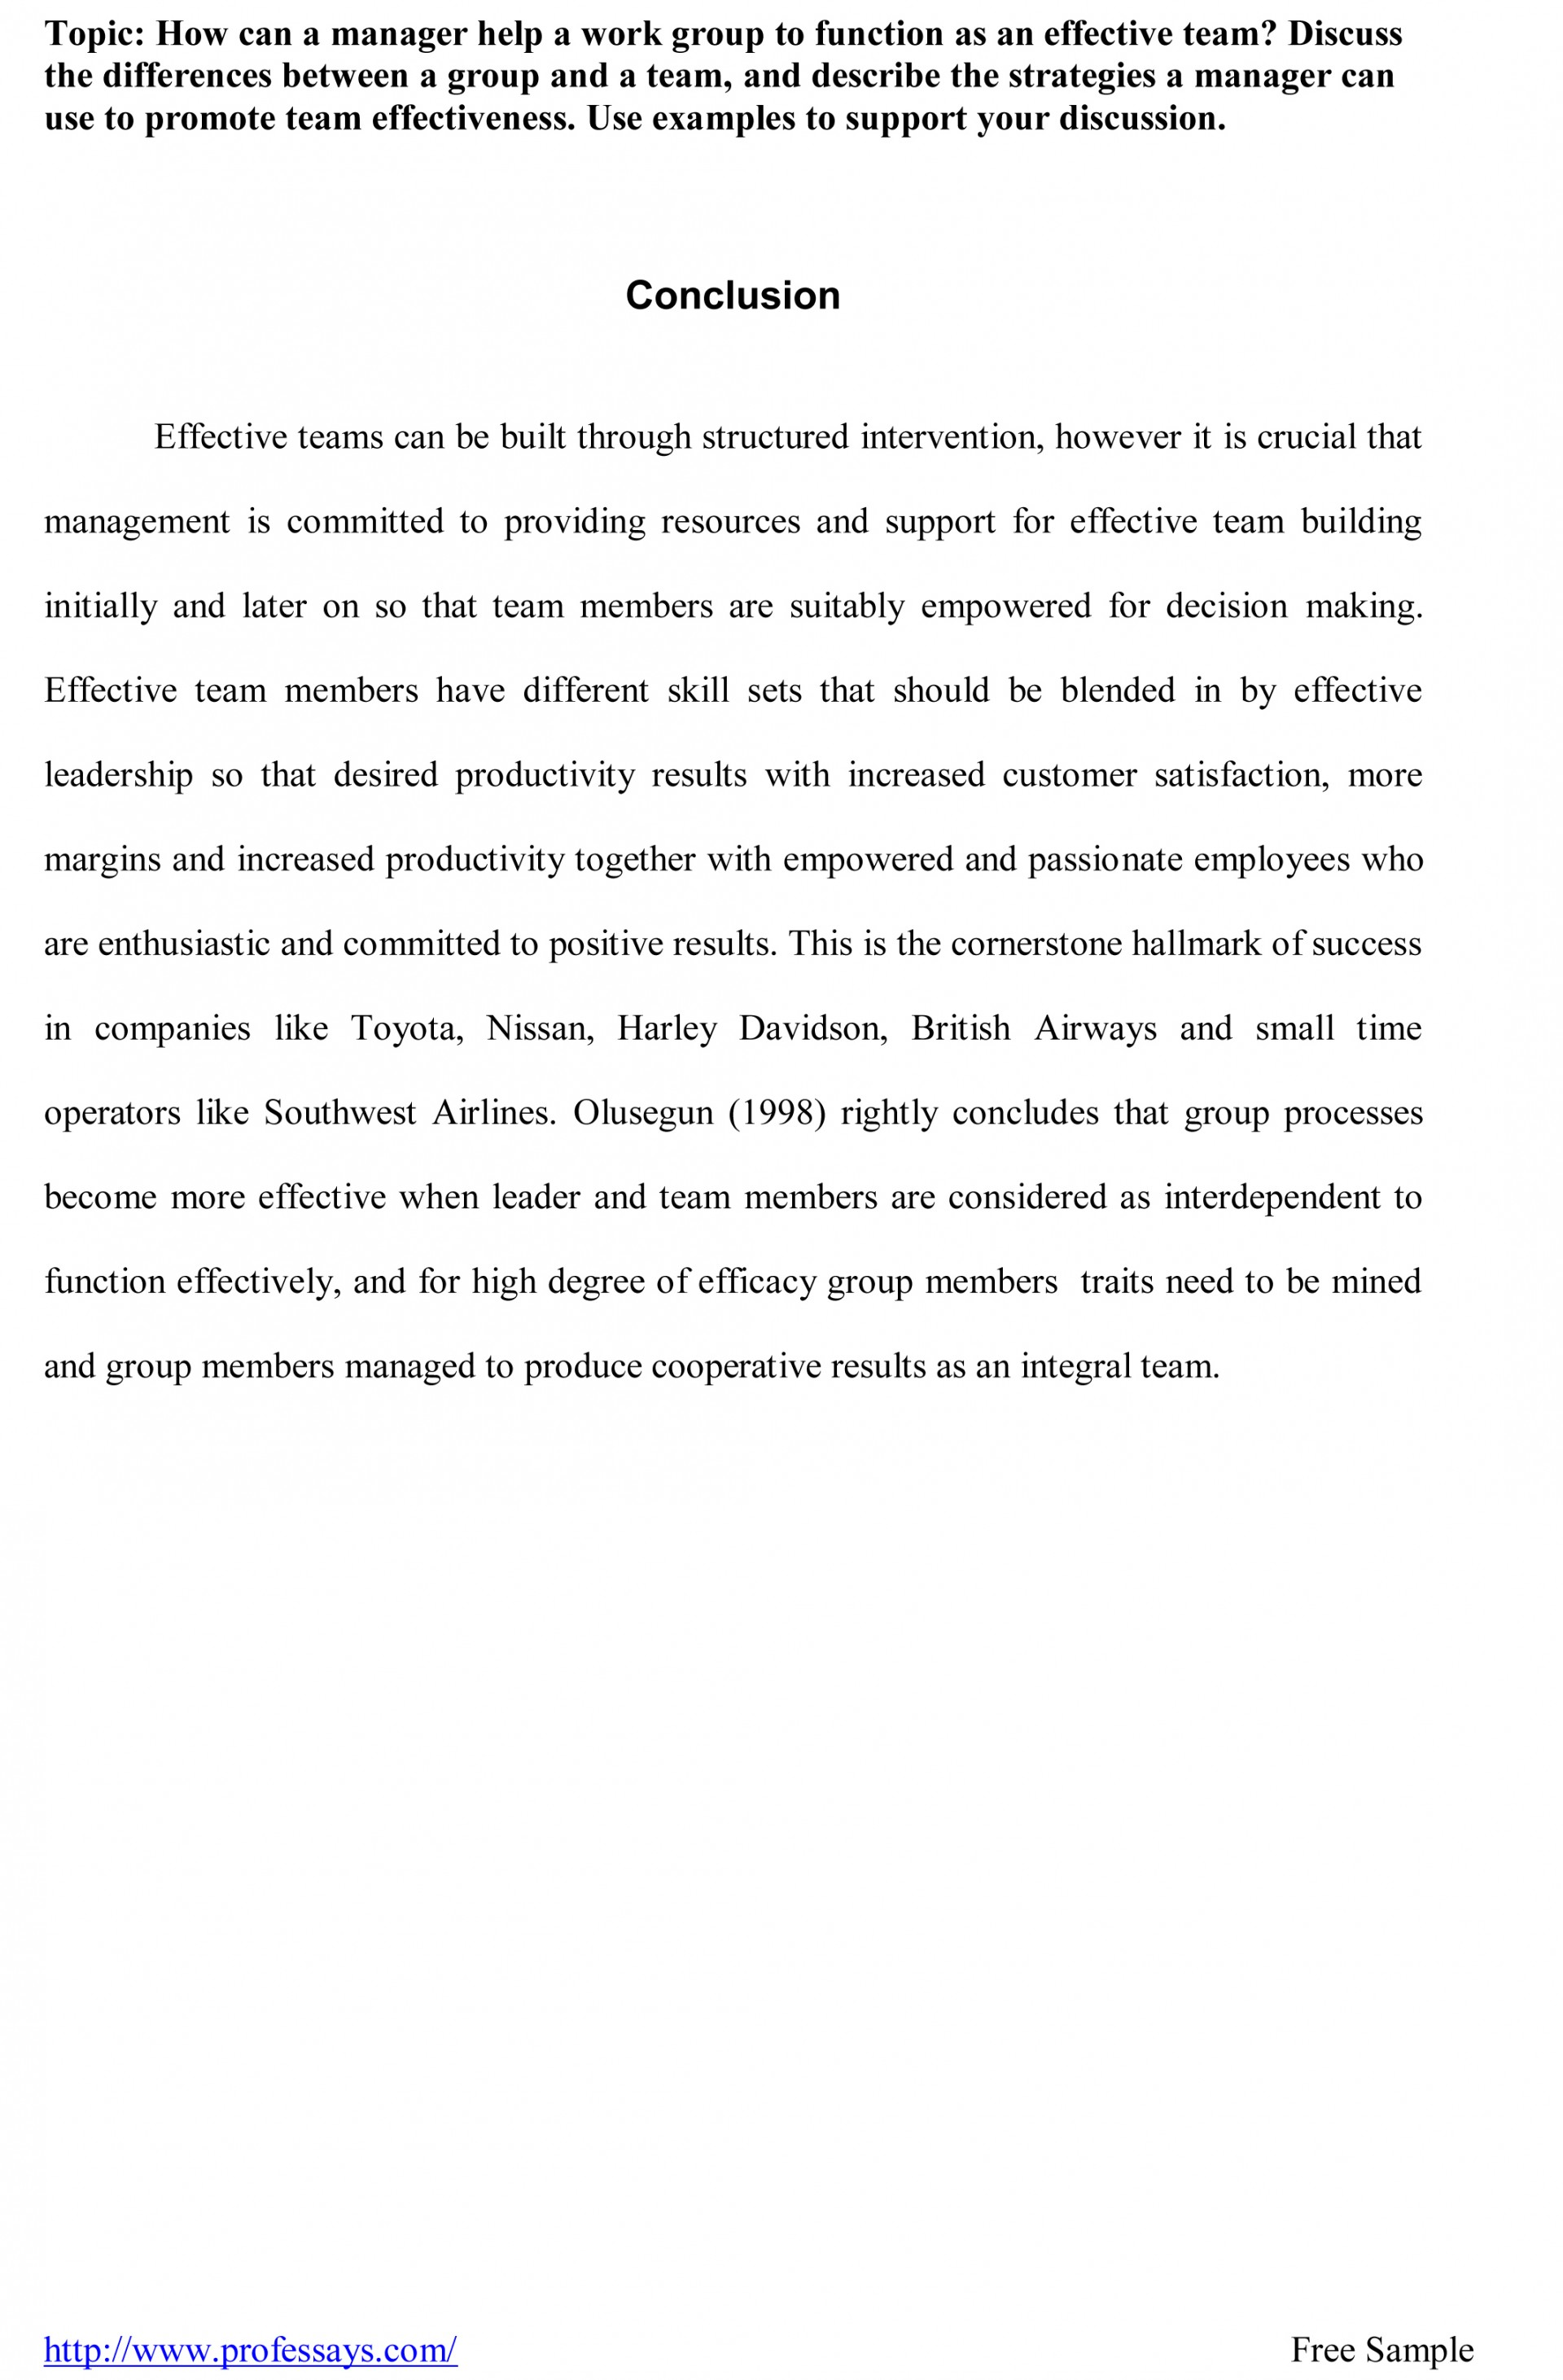 001 Example Of Research Paper Conclusion Sample For Astounding Conclusions In About Smoking 1920